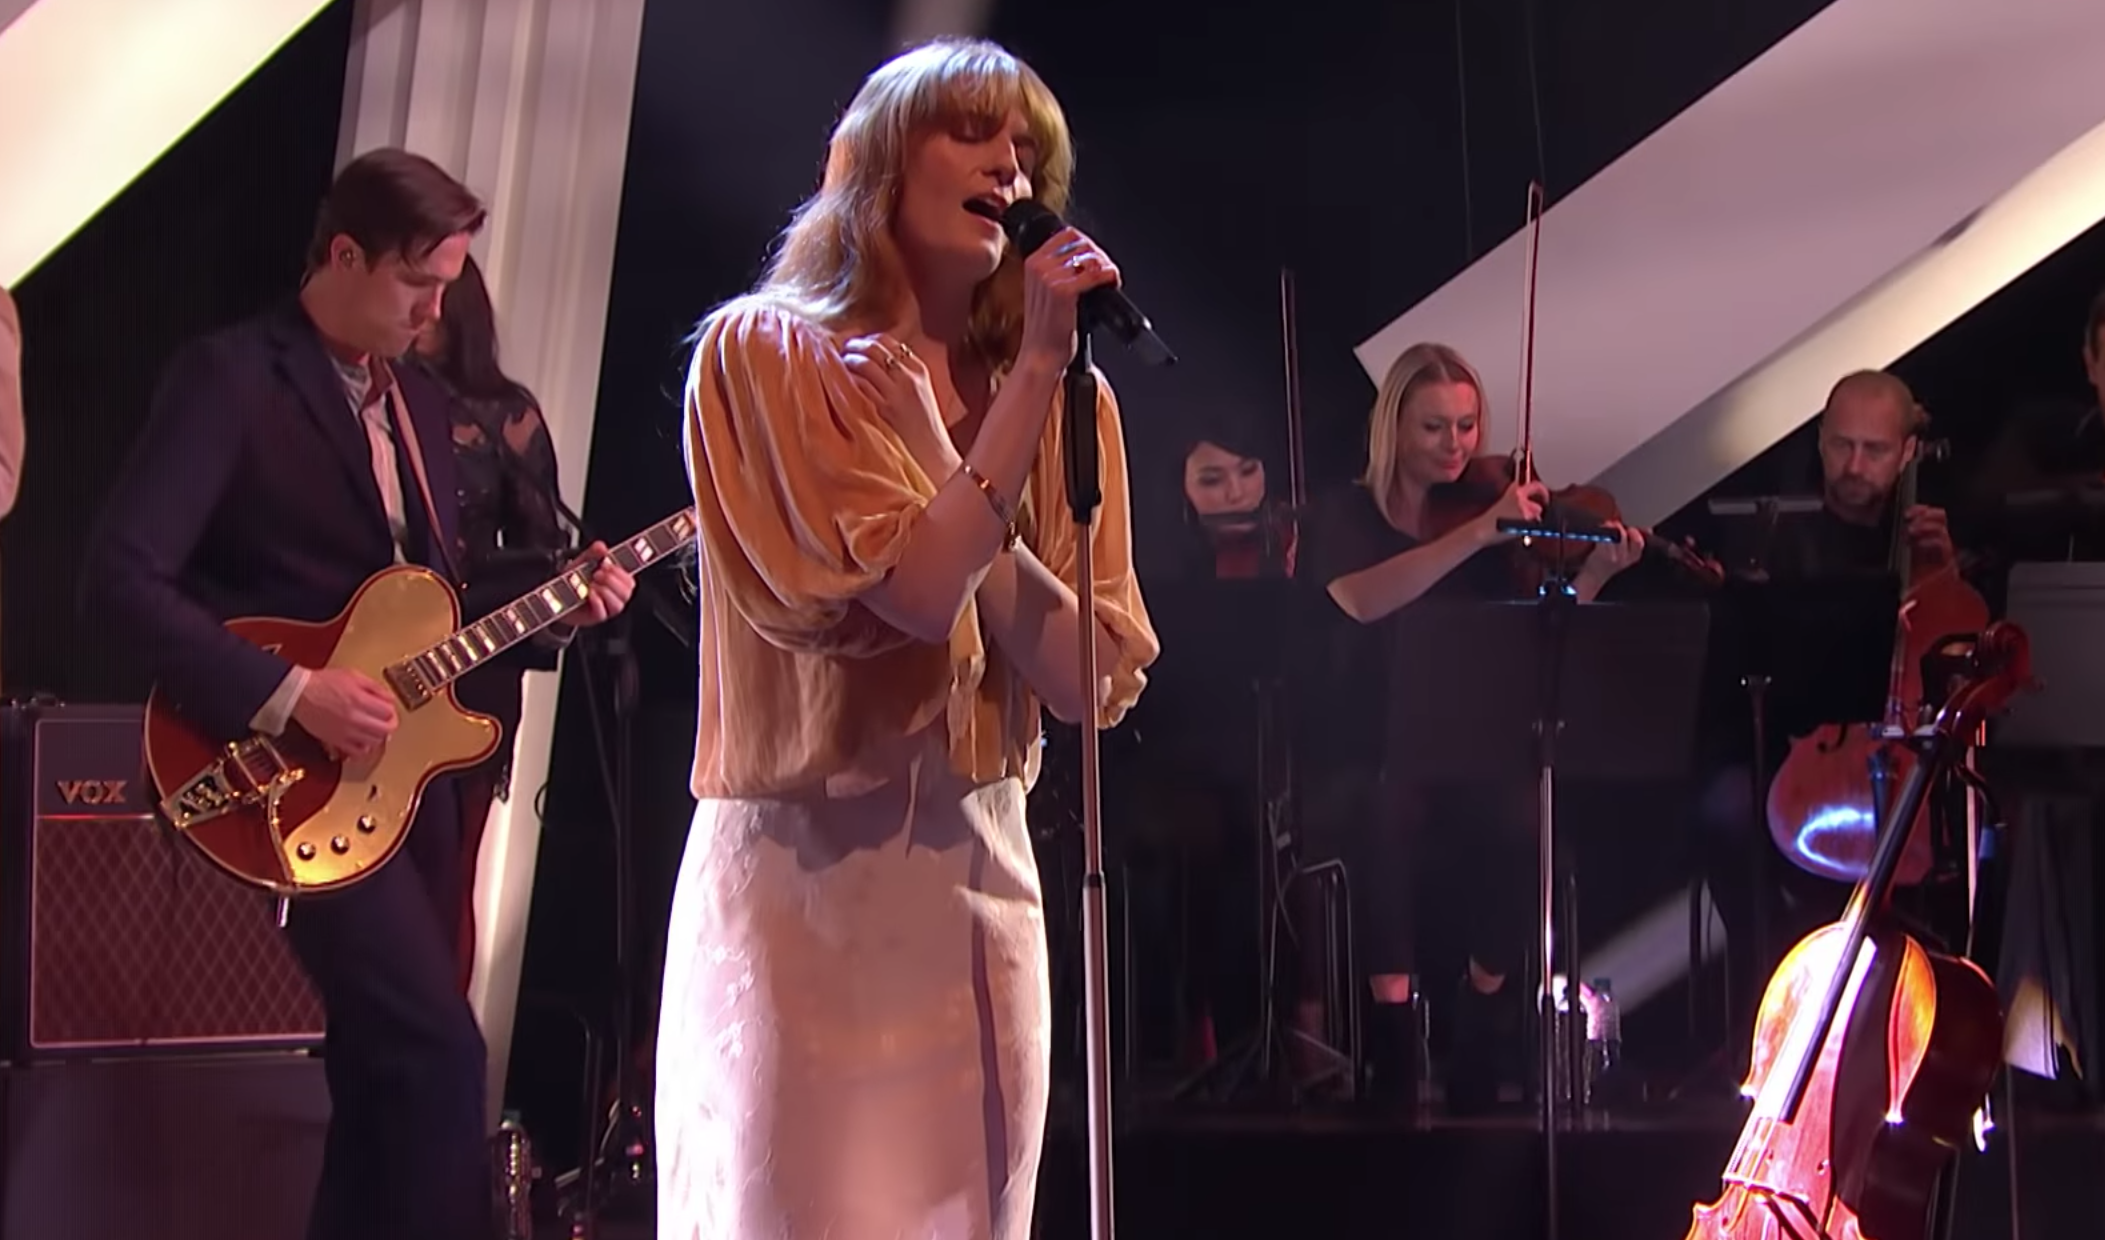 Florence + The Machine, Lily Allen, Young Fathers and more take to Jools